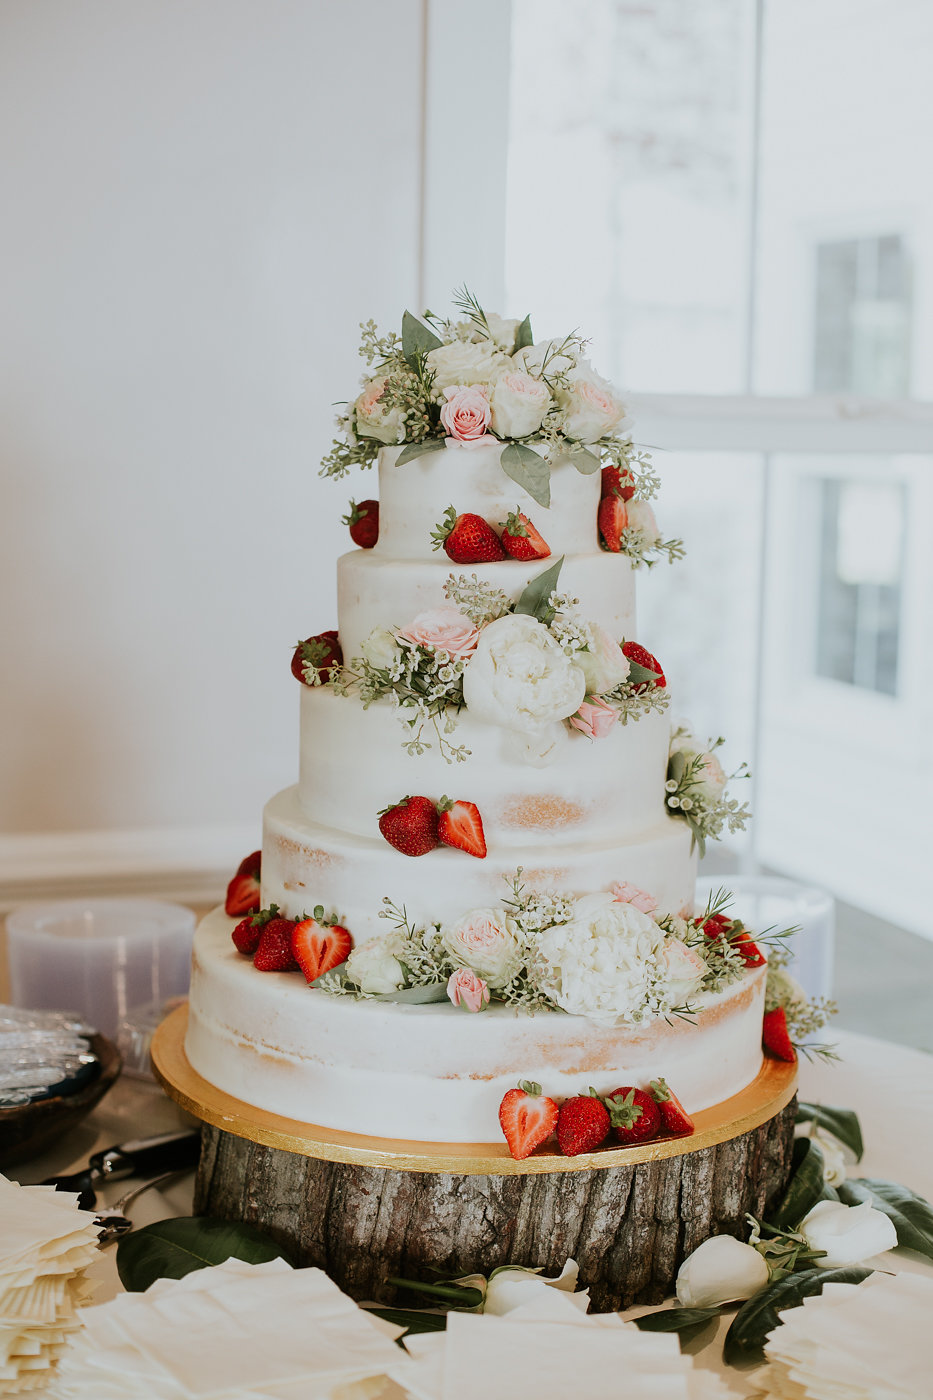 Naked Wedding Cakes - North Carolina Wedding Venue - Triple J Manor House Wedding